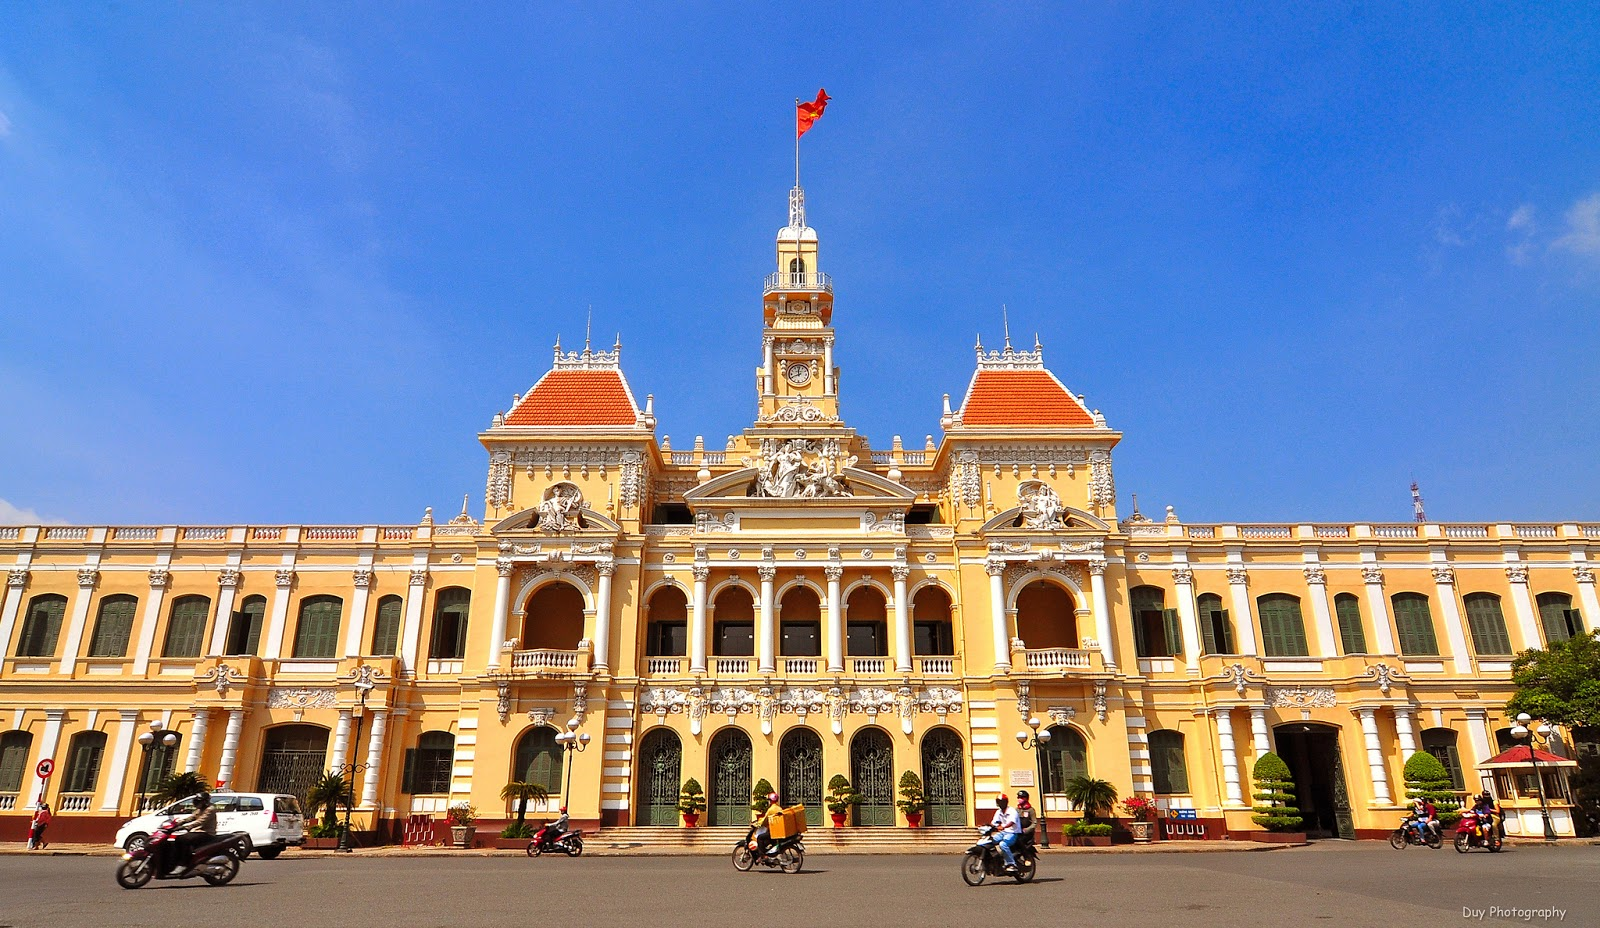 Ho Chi Minh City People's Committee Head office